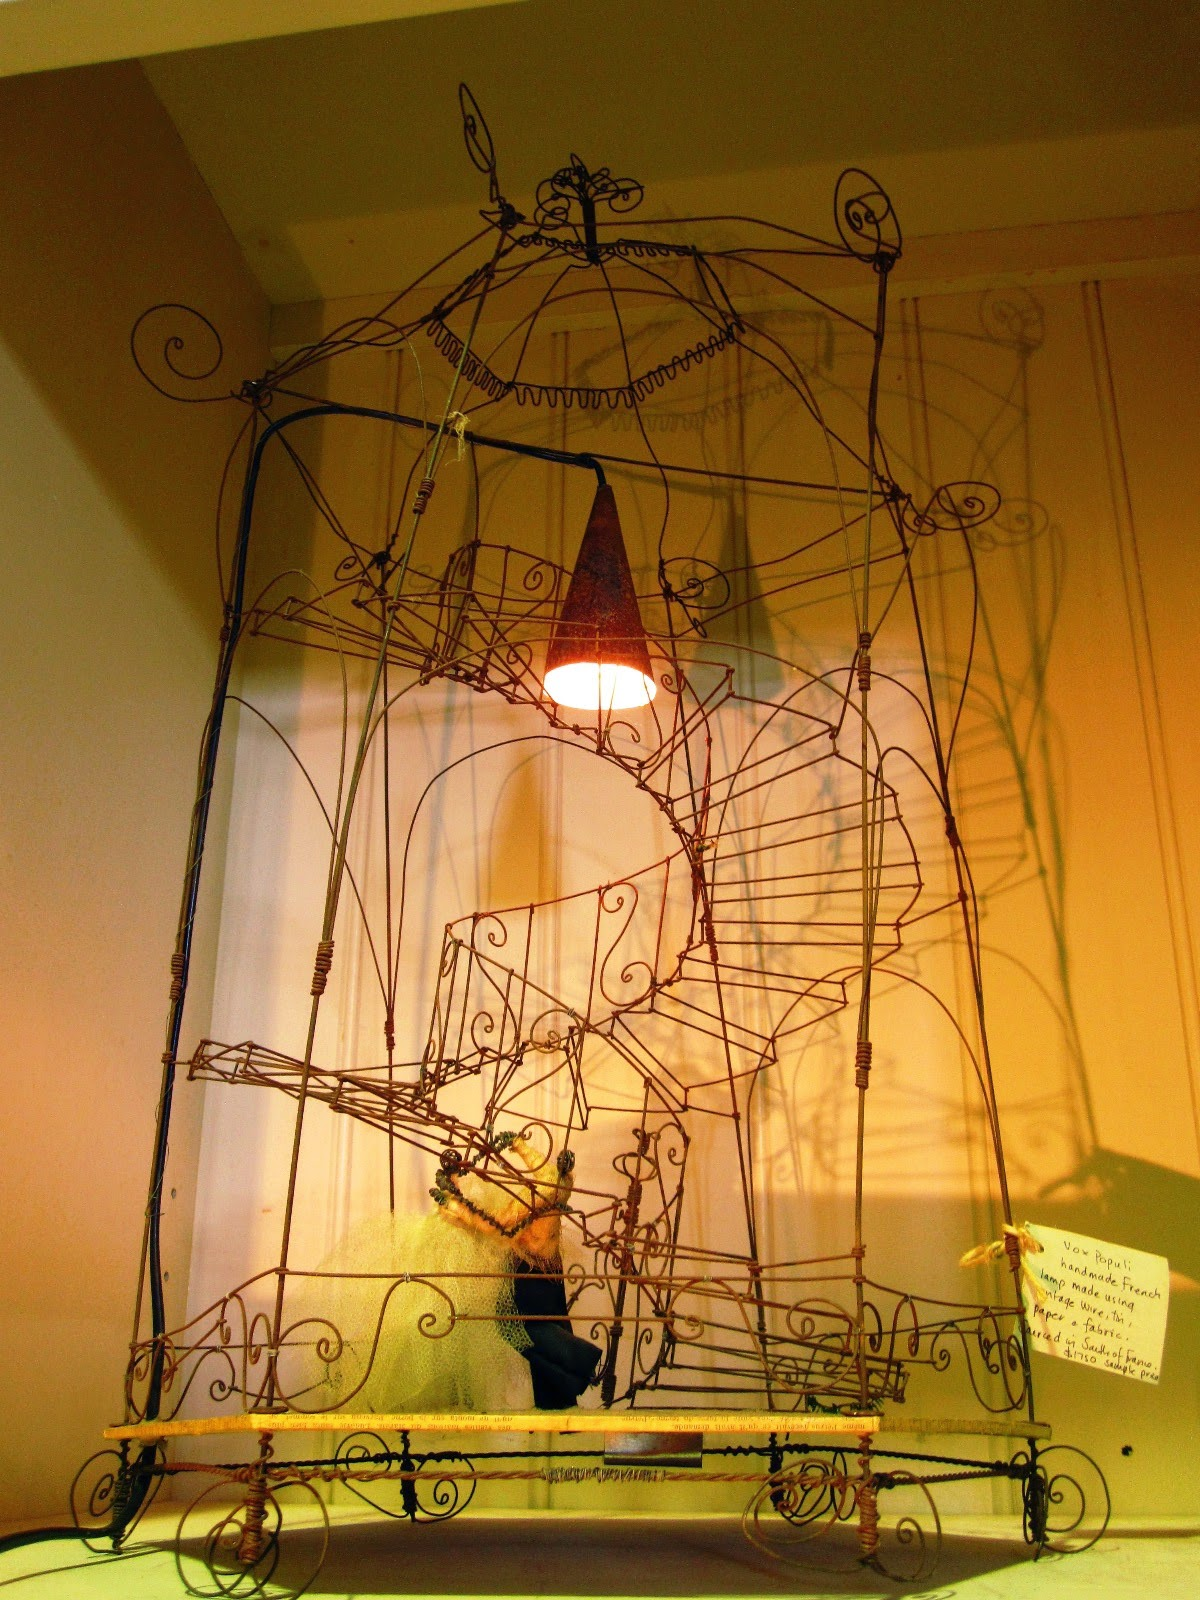 Vintage wire birdcage-shaped sculpture with wire spiral staircase and fabric doll, used as the basis for a lamp.